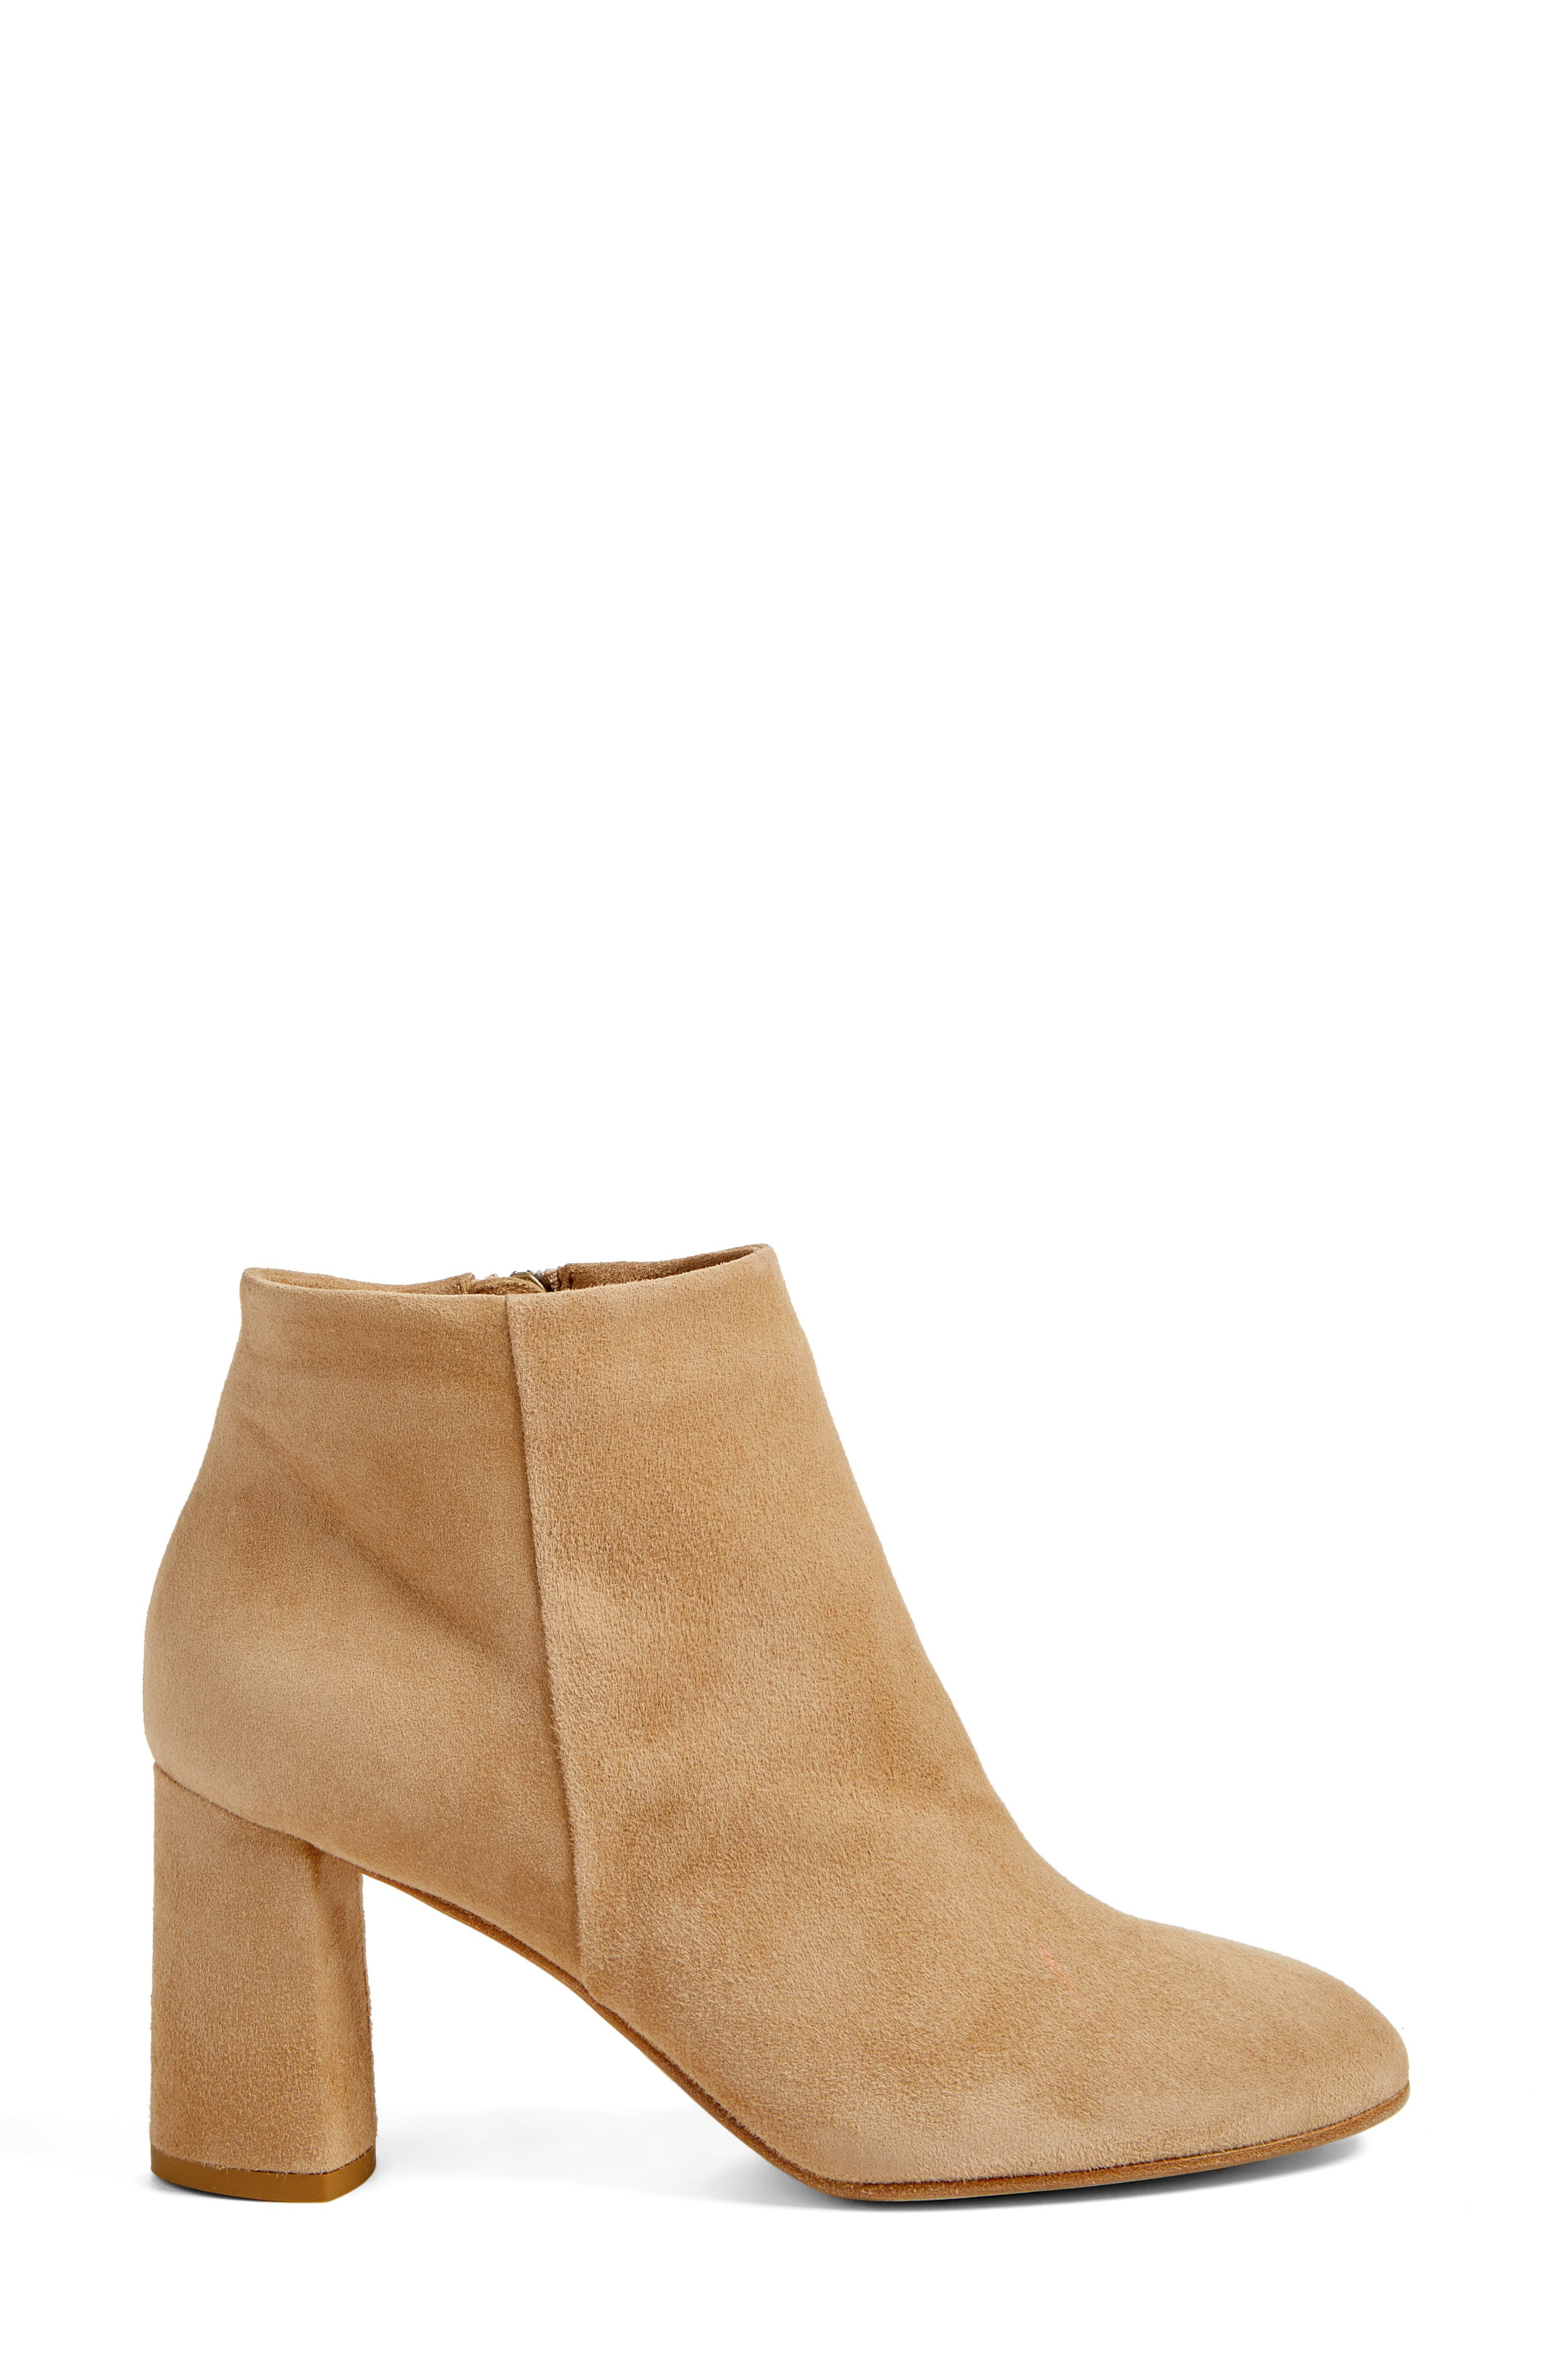 Aster Bootie,                             Alternate thumbnail 3, color,                             250